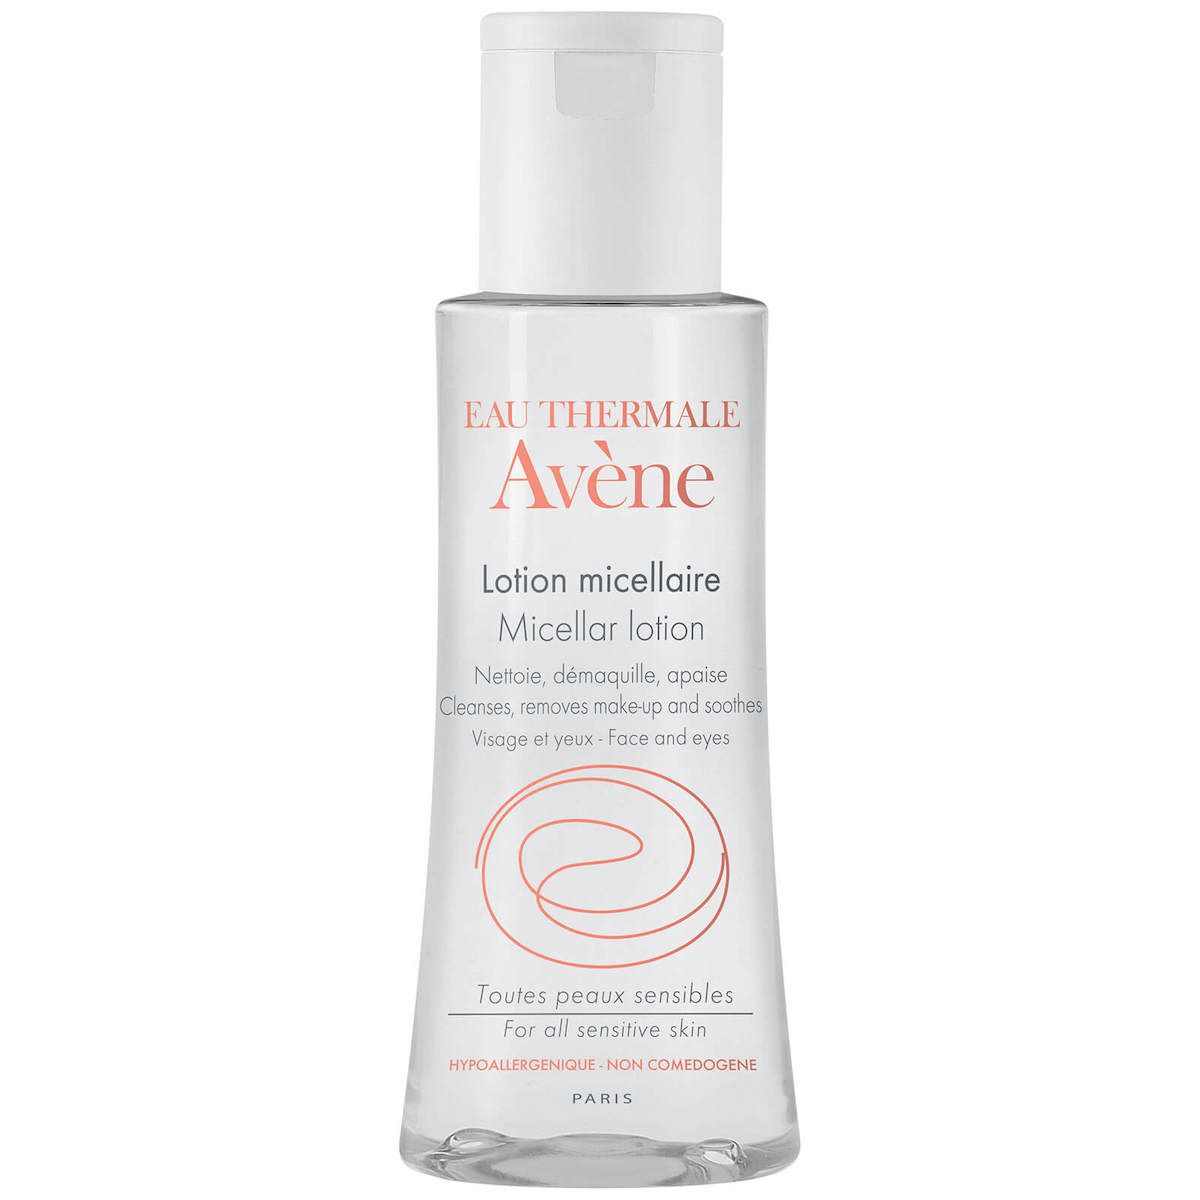 Avene Micellar Lotion Cleanser & Make-up Remover 3.3 Fl Oz